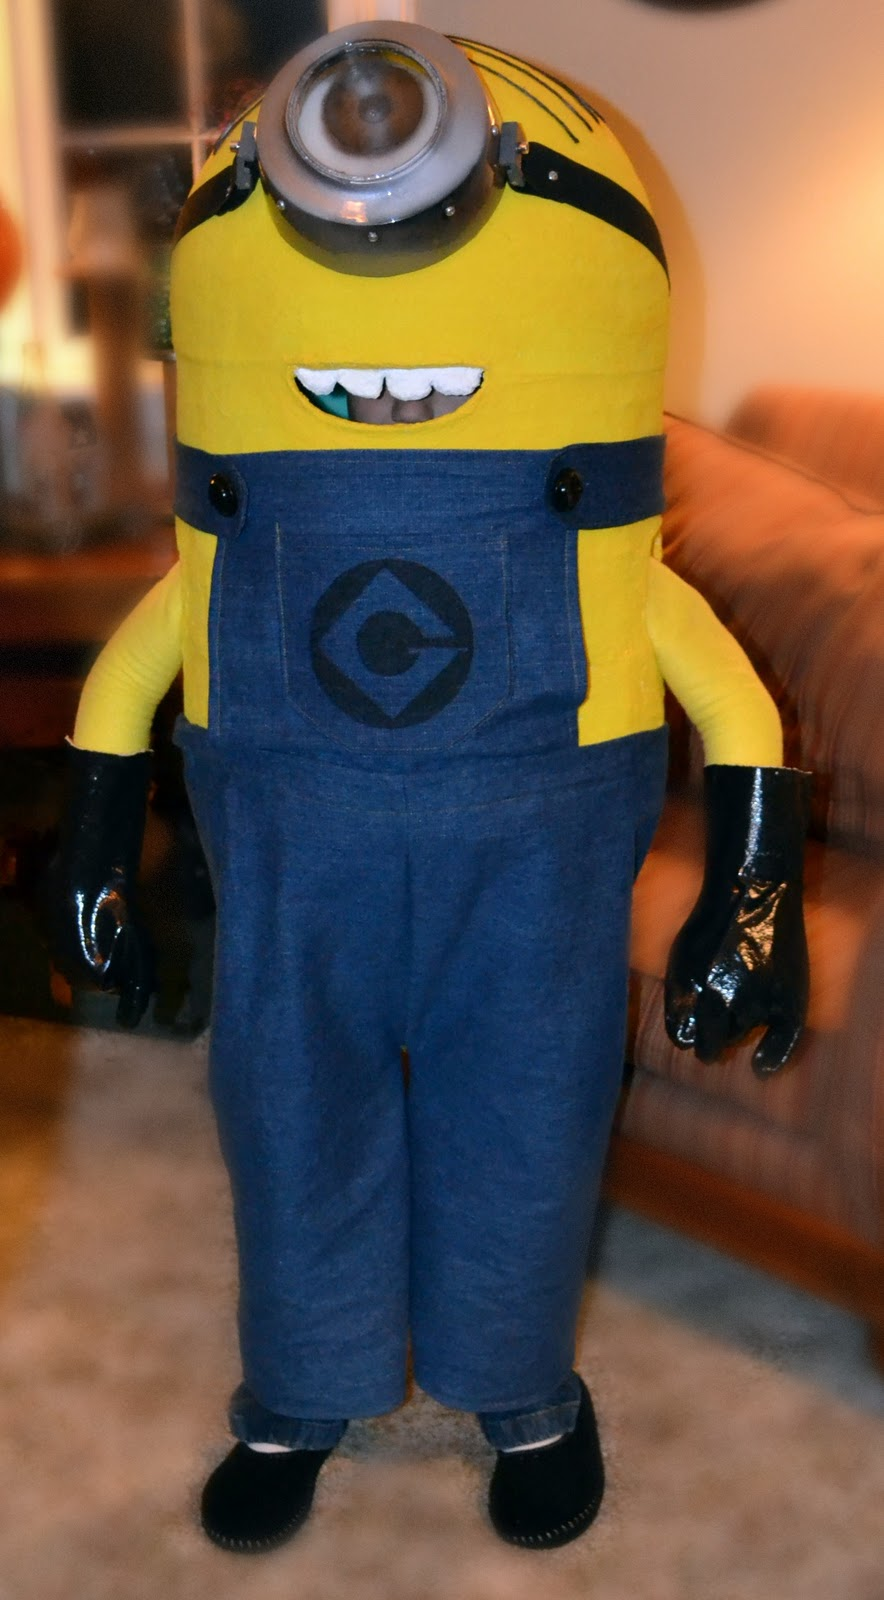 Minion Costume http://beeunique2day.blogspot.com/2011/11/making-of-minion.html